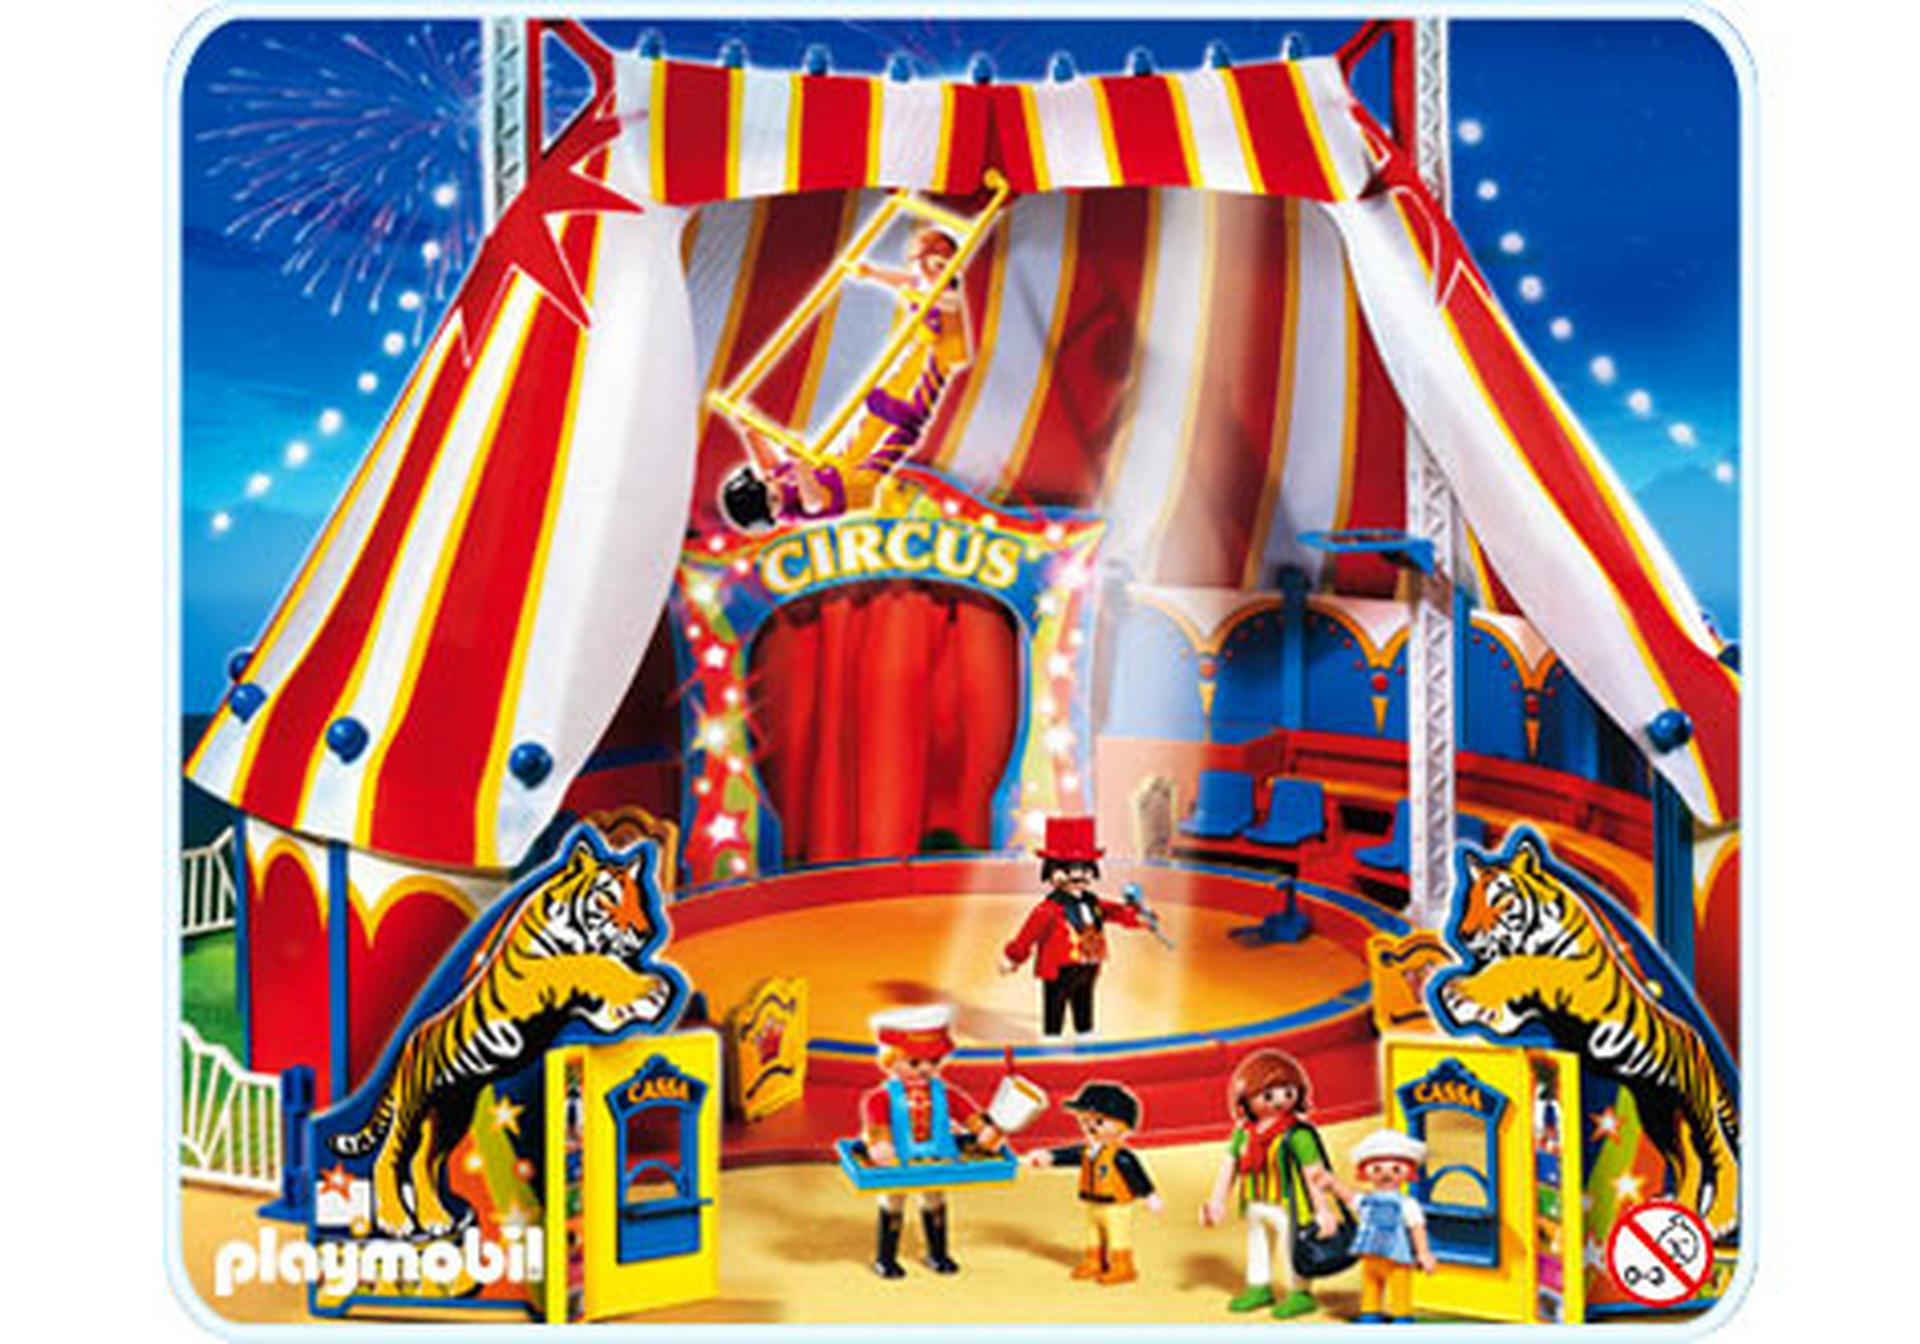 Grand chapiteau de cirque 4230 a playmobil france - Chapiteau cirque playmobil ...